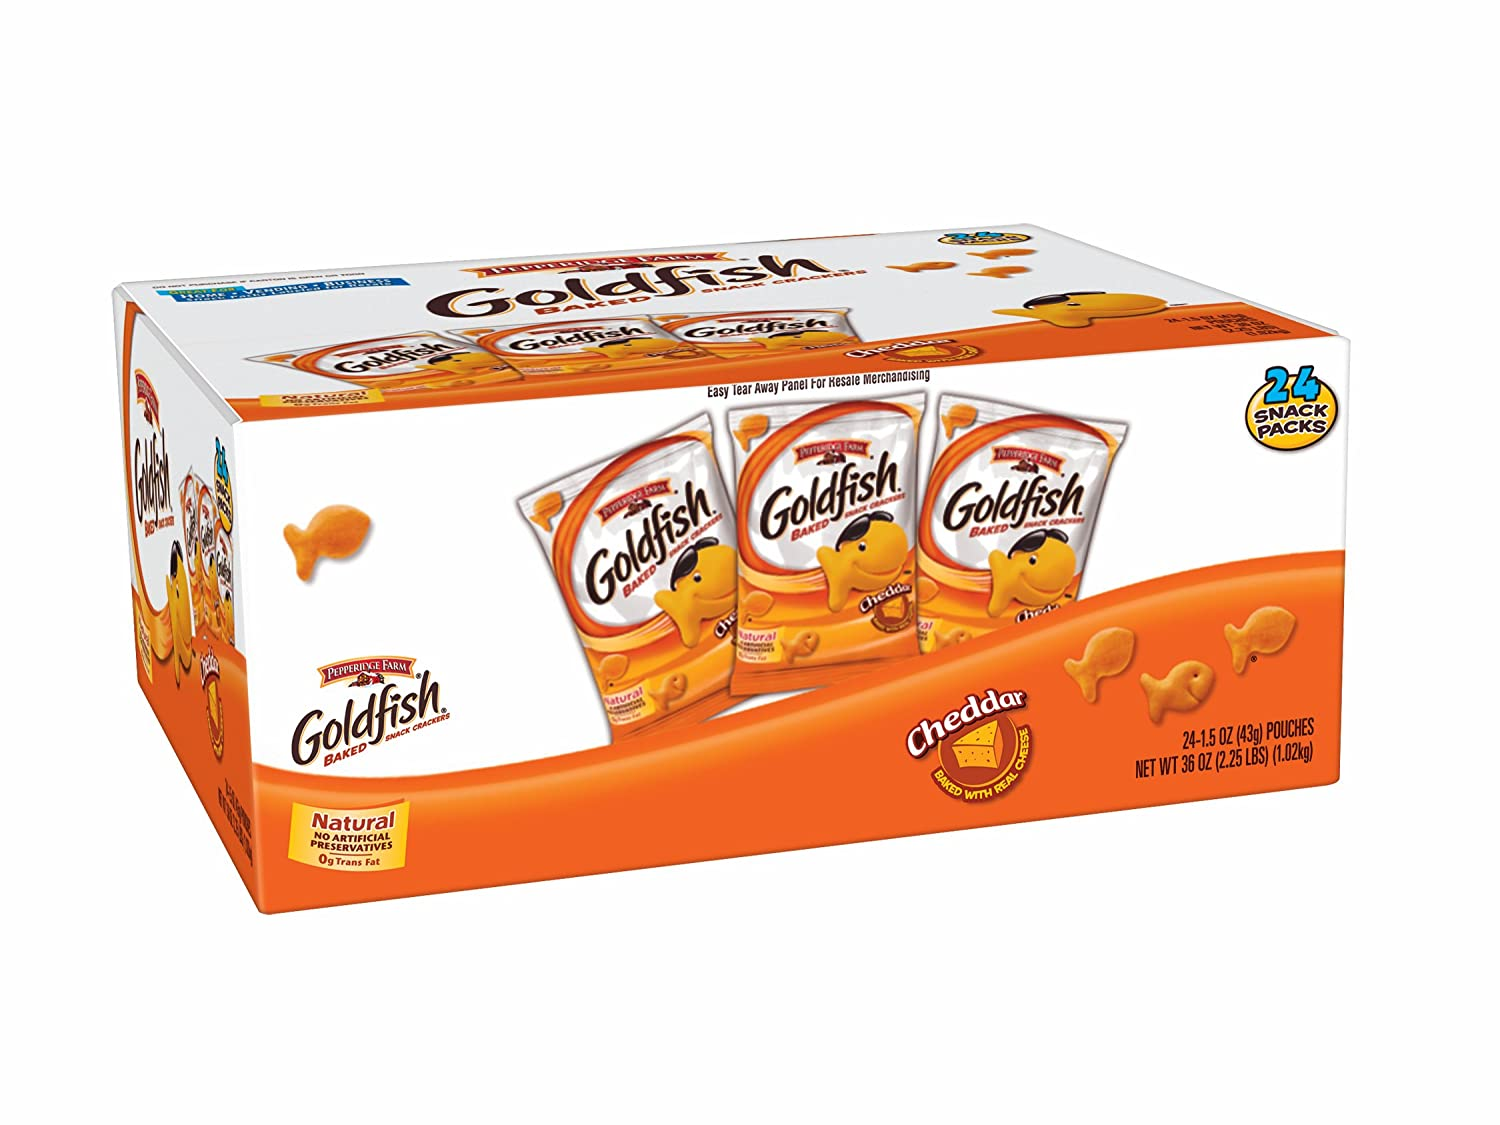 Pepperidge Farm Fixed price for sale Goldfish Cheddar 24 Count Bags oz o Pack 1.5 Award